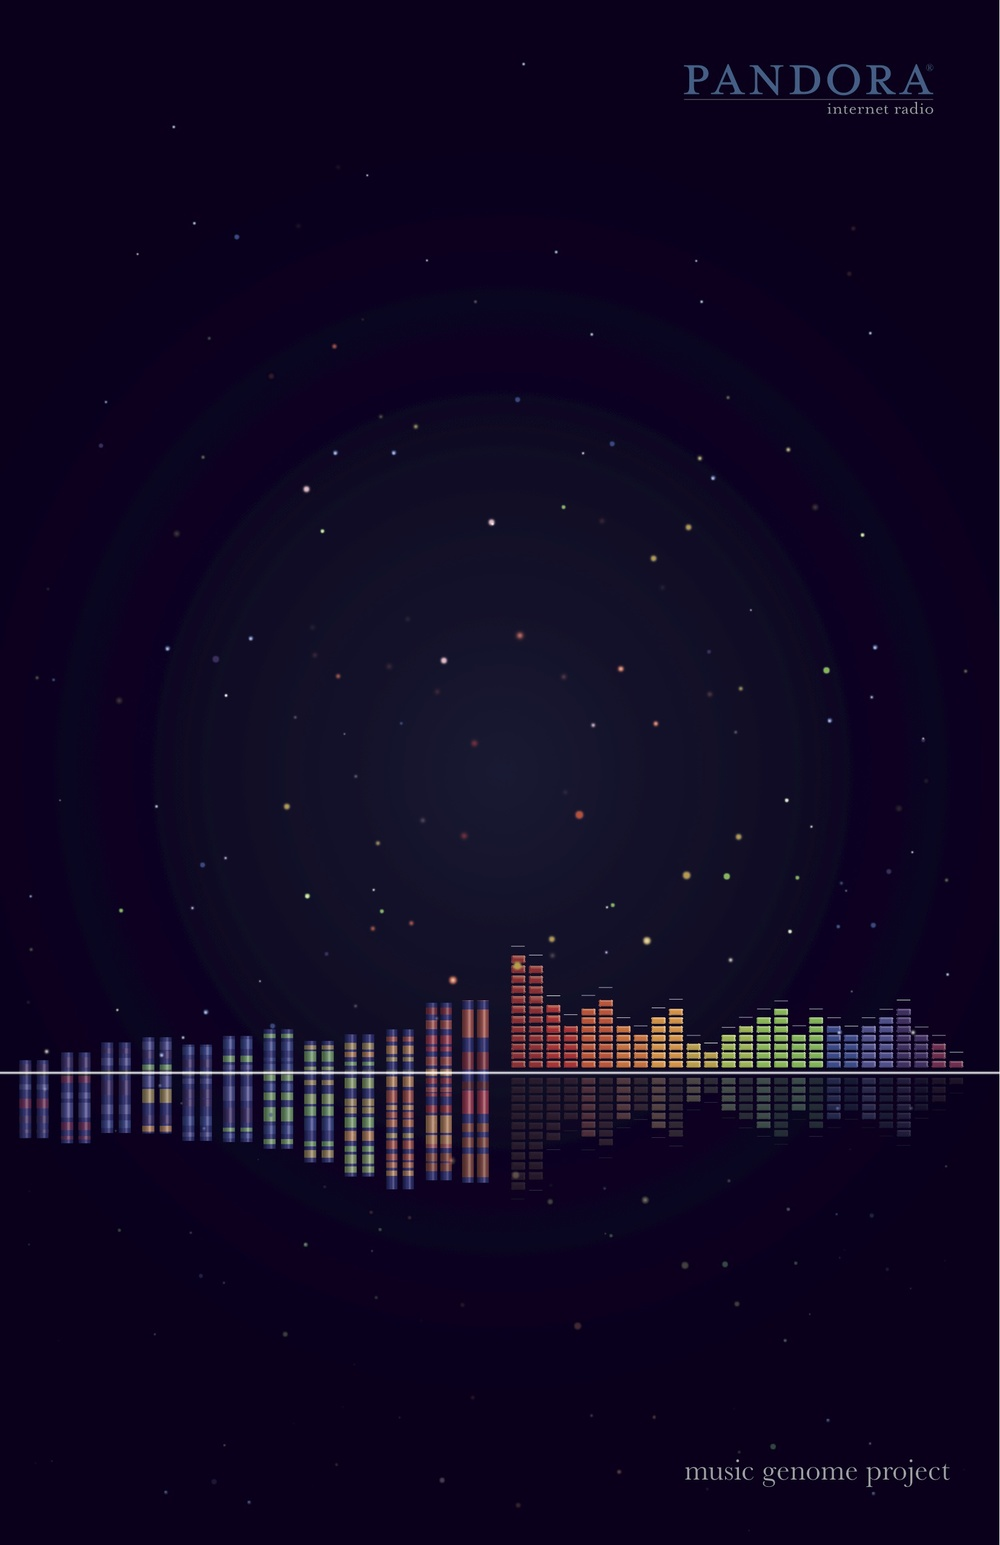 This promotional poster for Pandora is based on the concept of the Music Genome Project